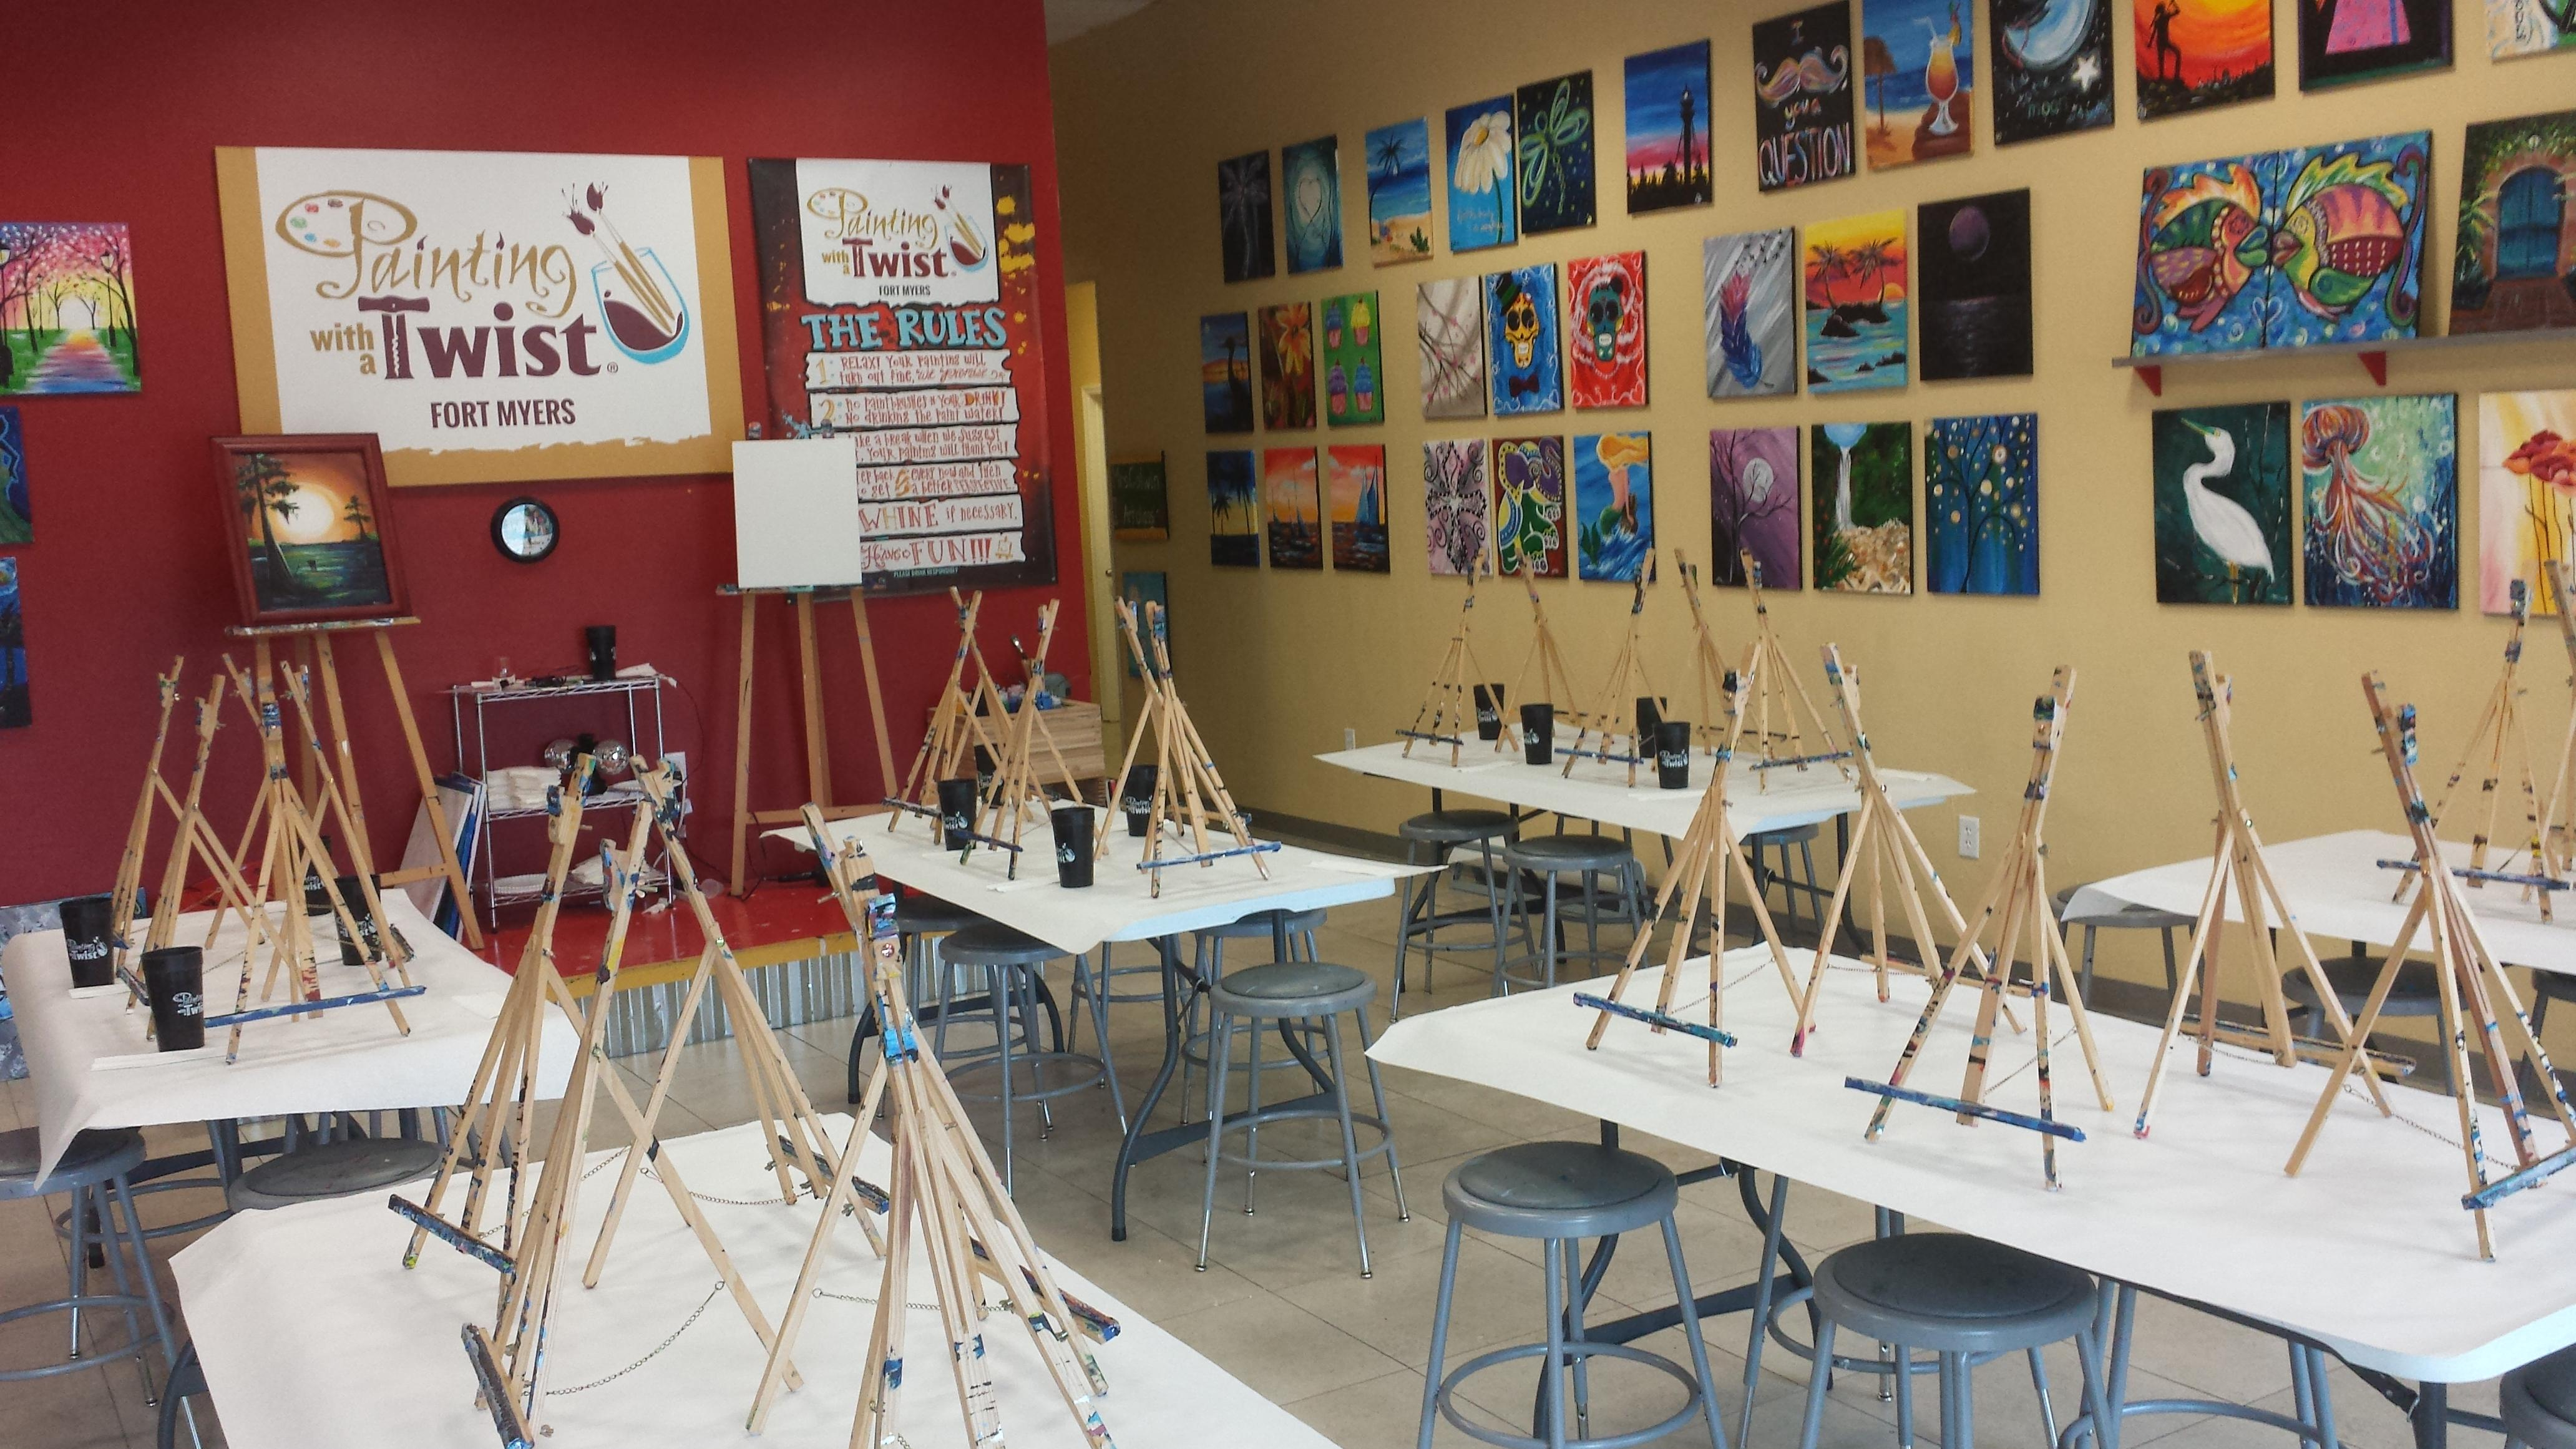 Painting with a twist coupons near me in fort myers 8coupons - Fort myers home decor stores paint ...